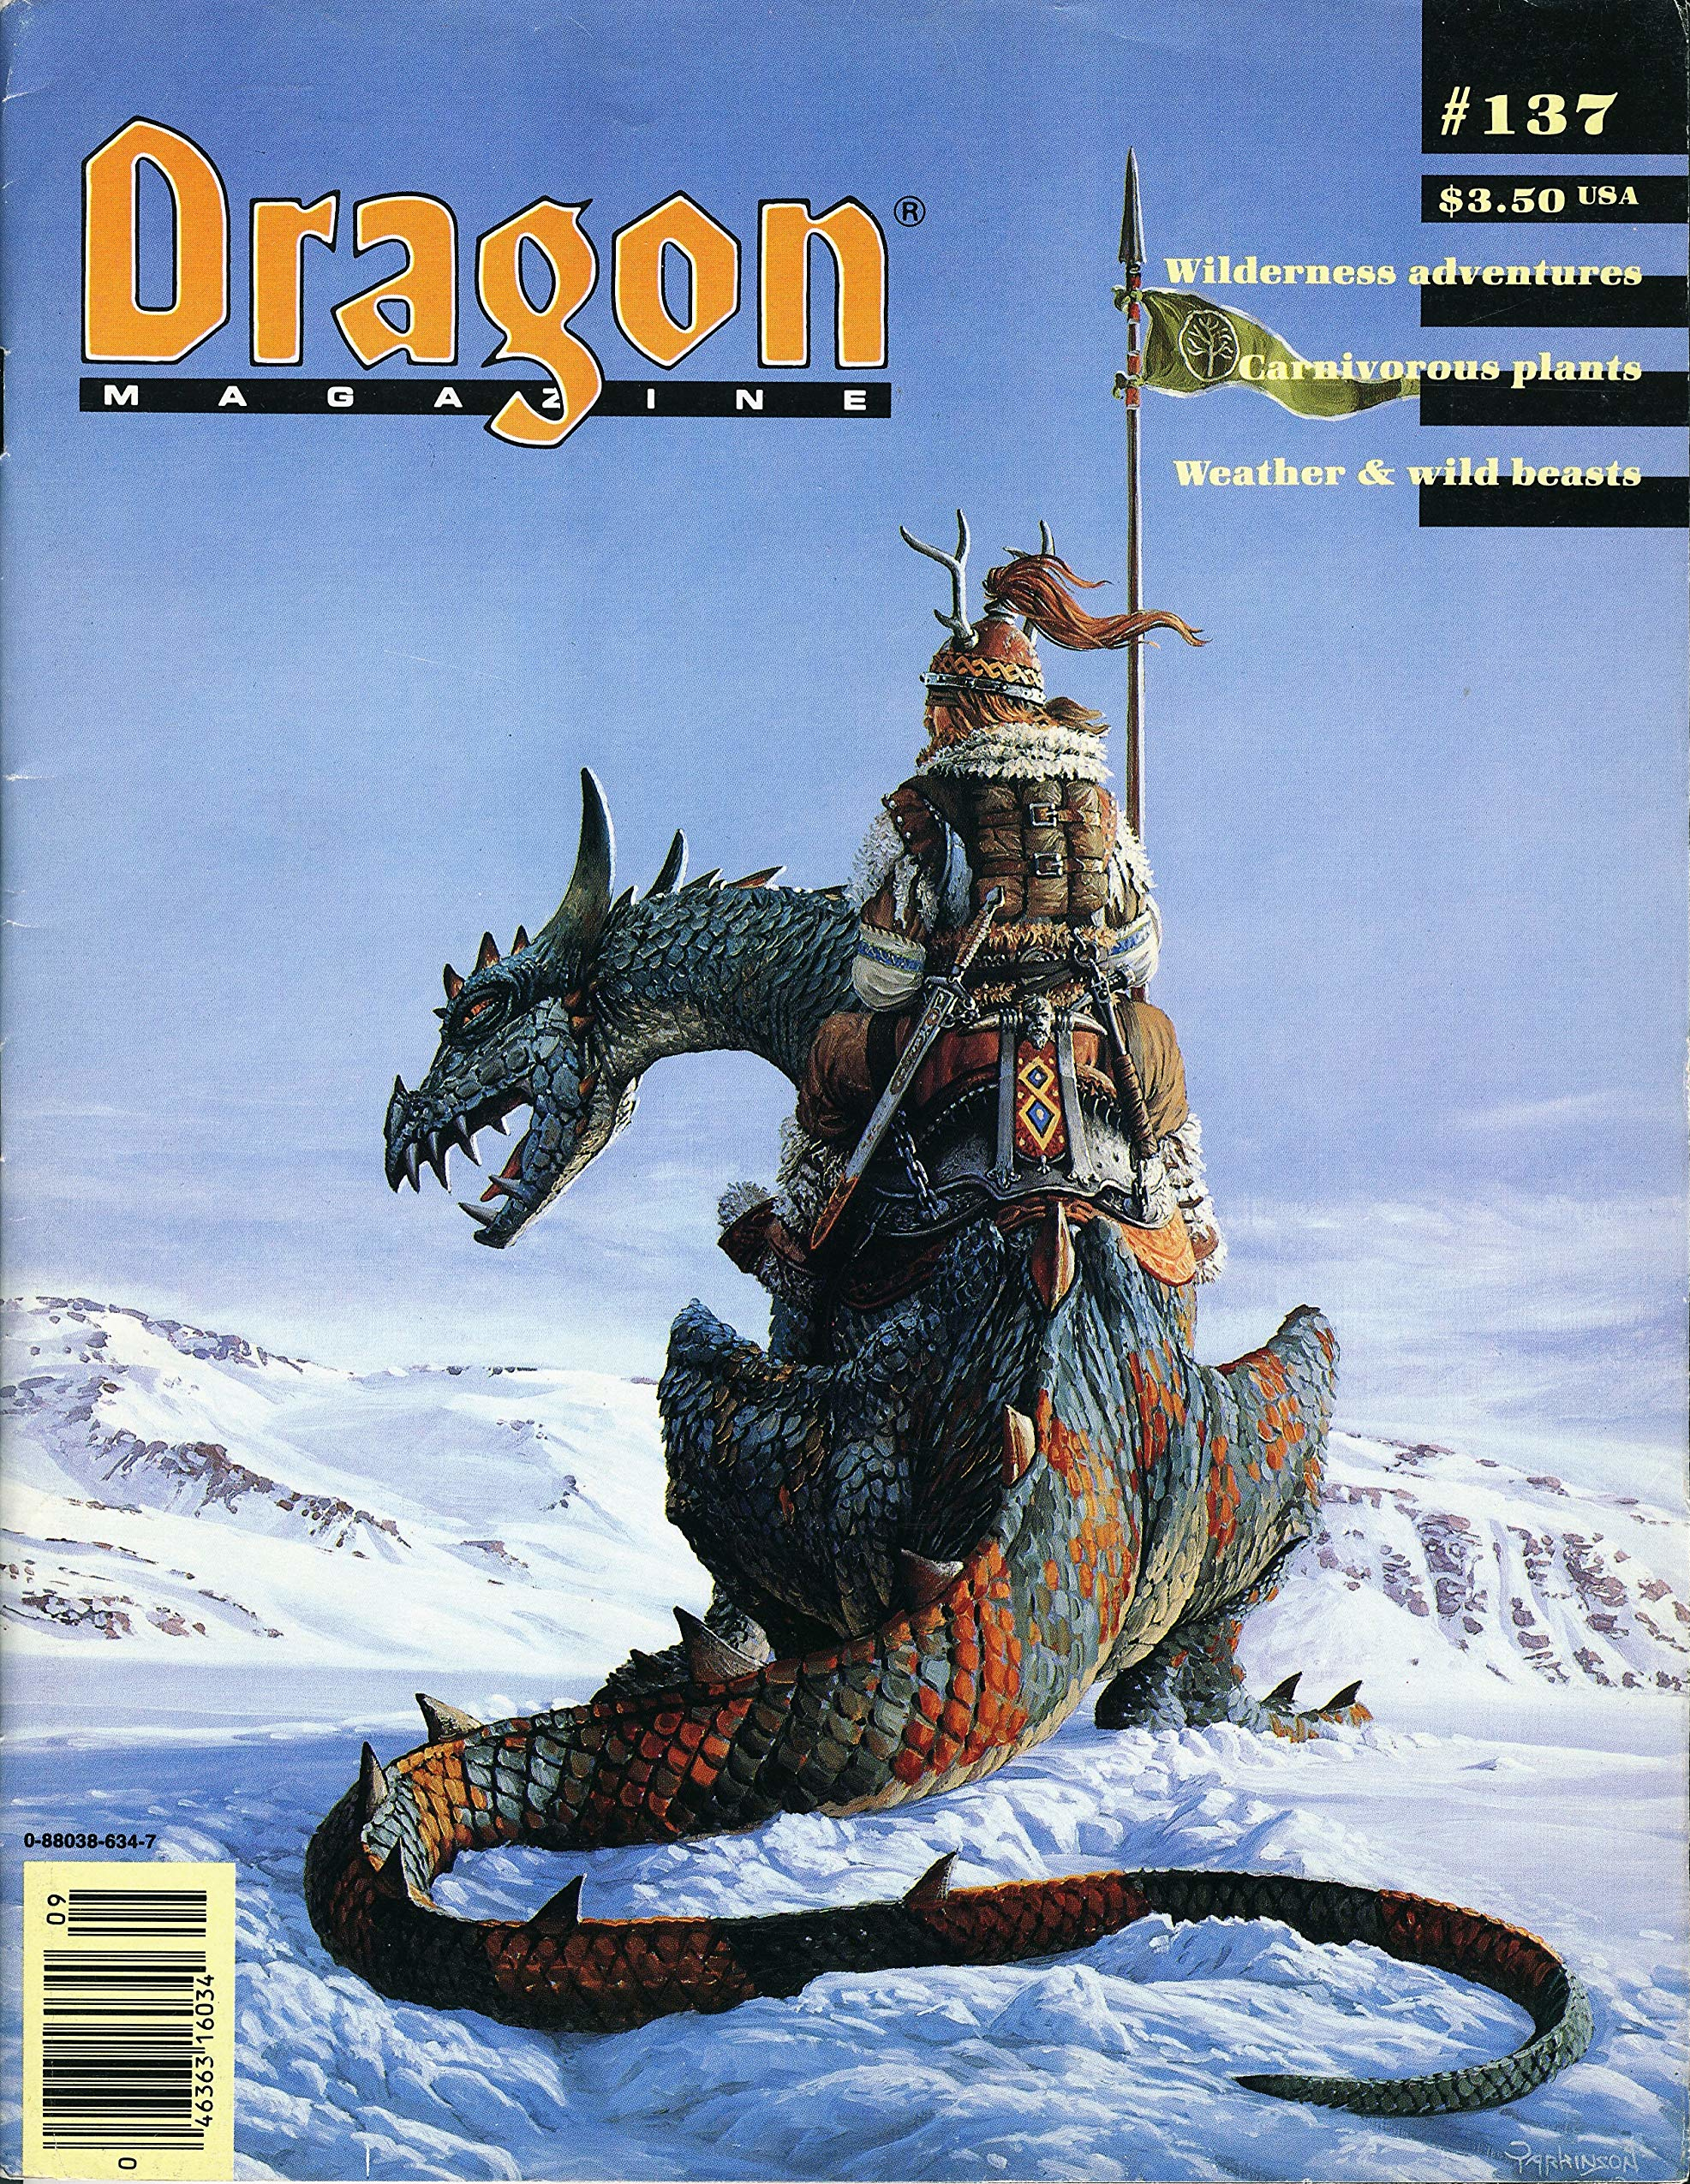 Dragon magazine 137